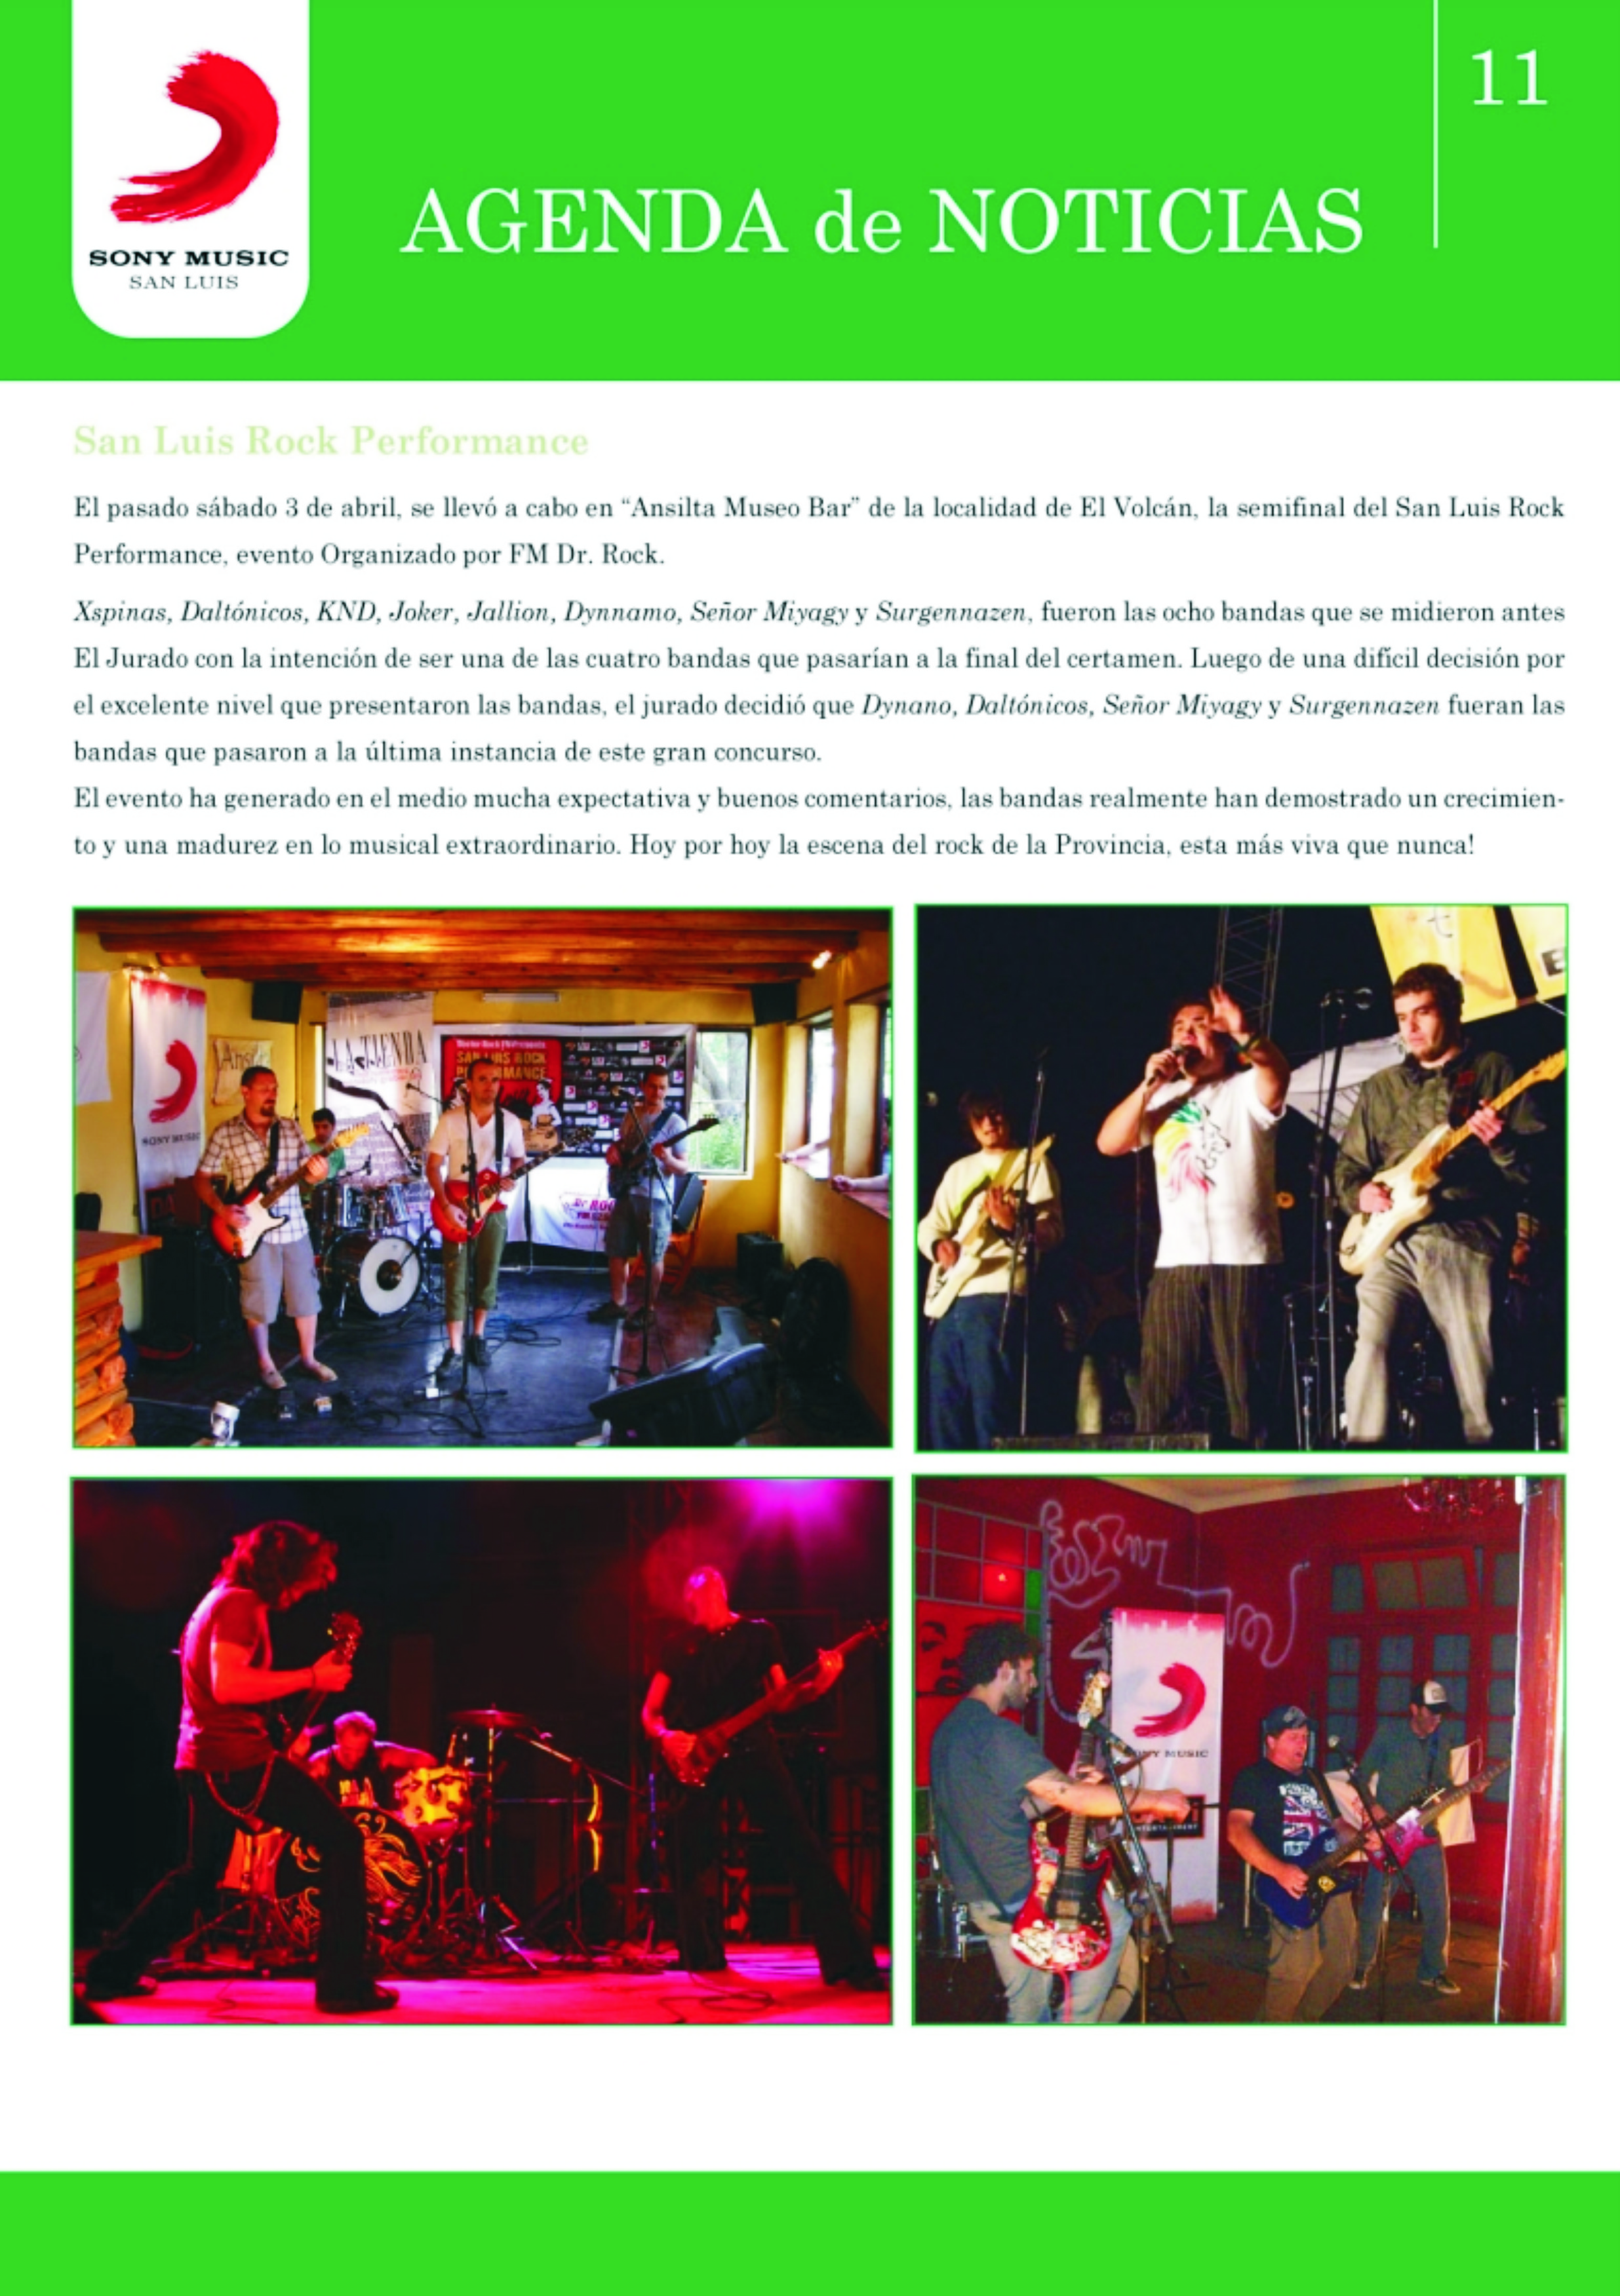 Agenda de noticias Sony Music San Luis, paginas sobre el San Luis Rock Performance (2010)-II